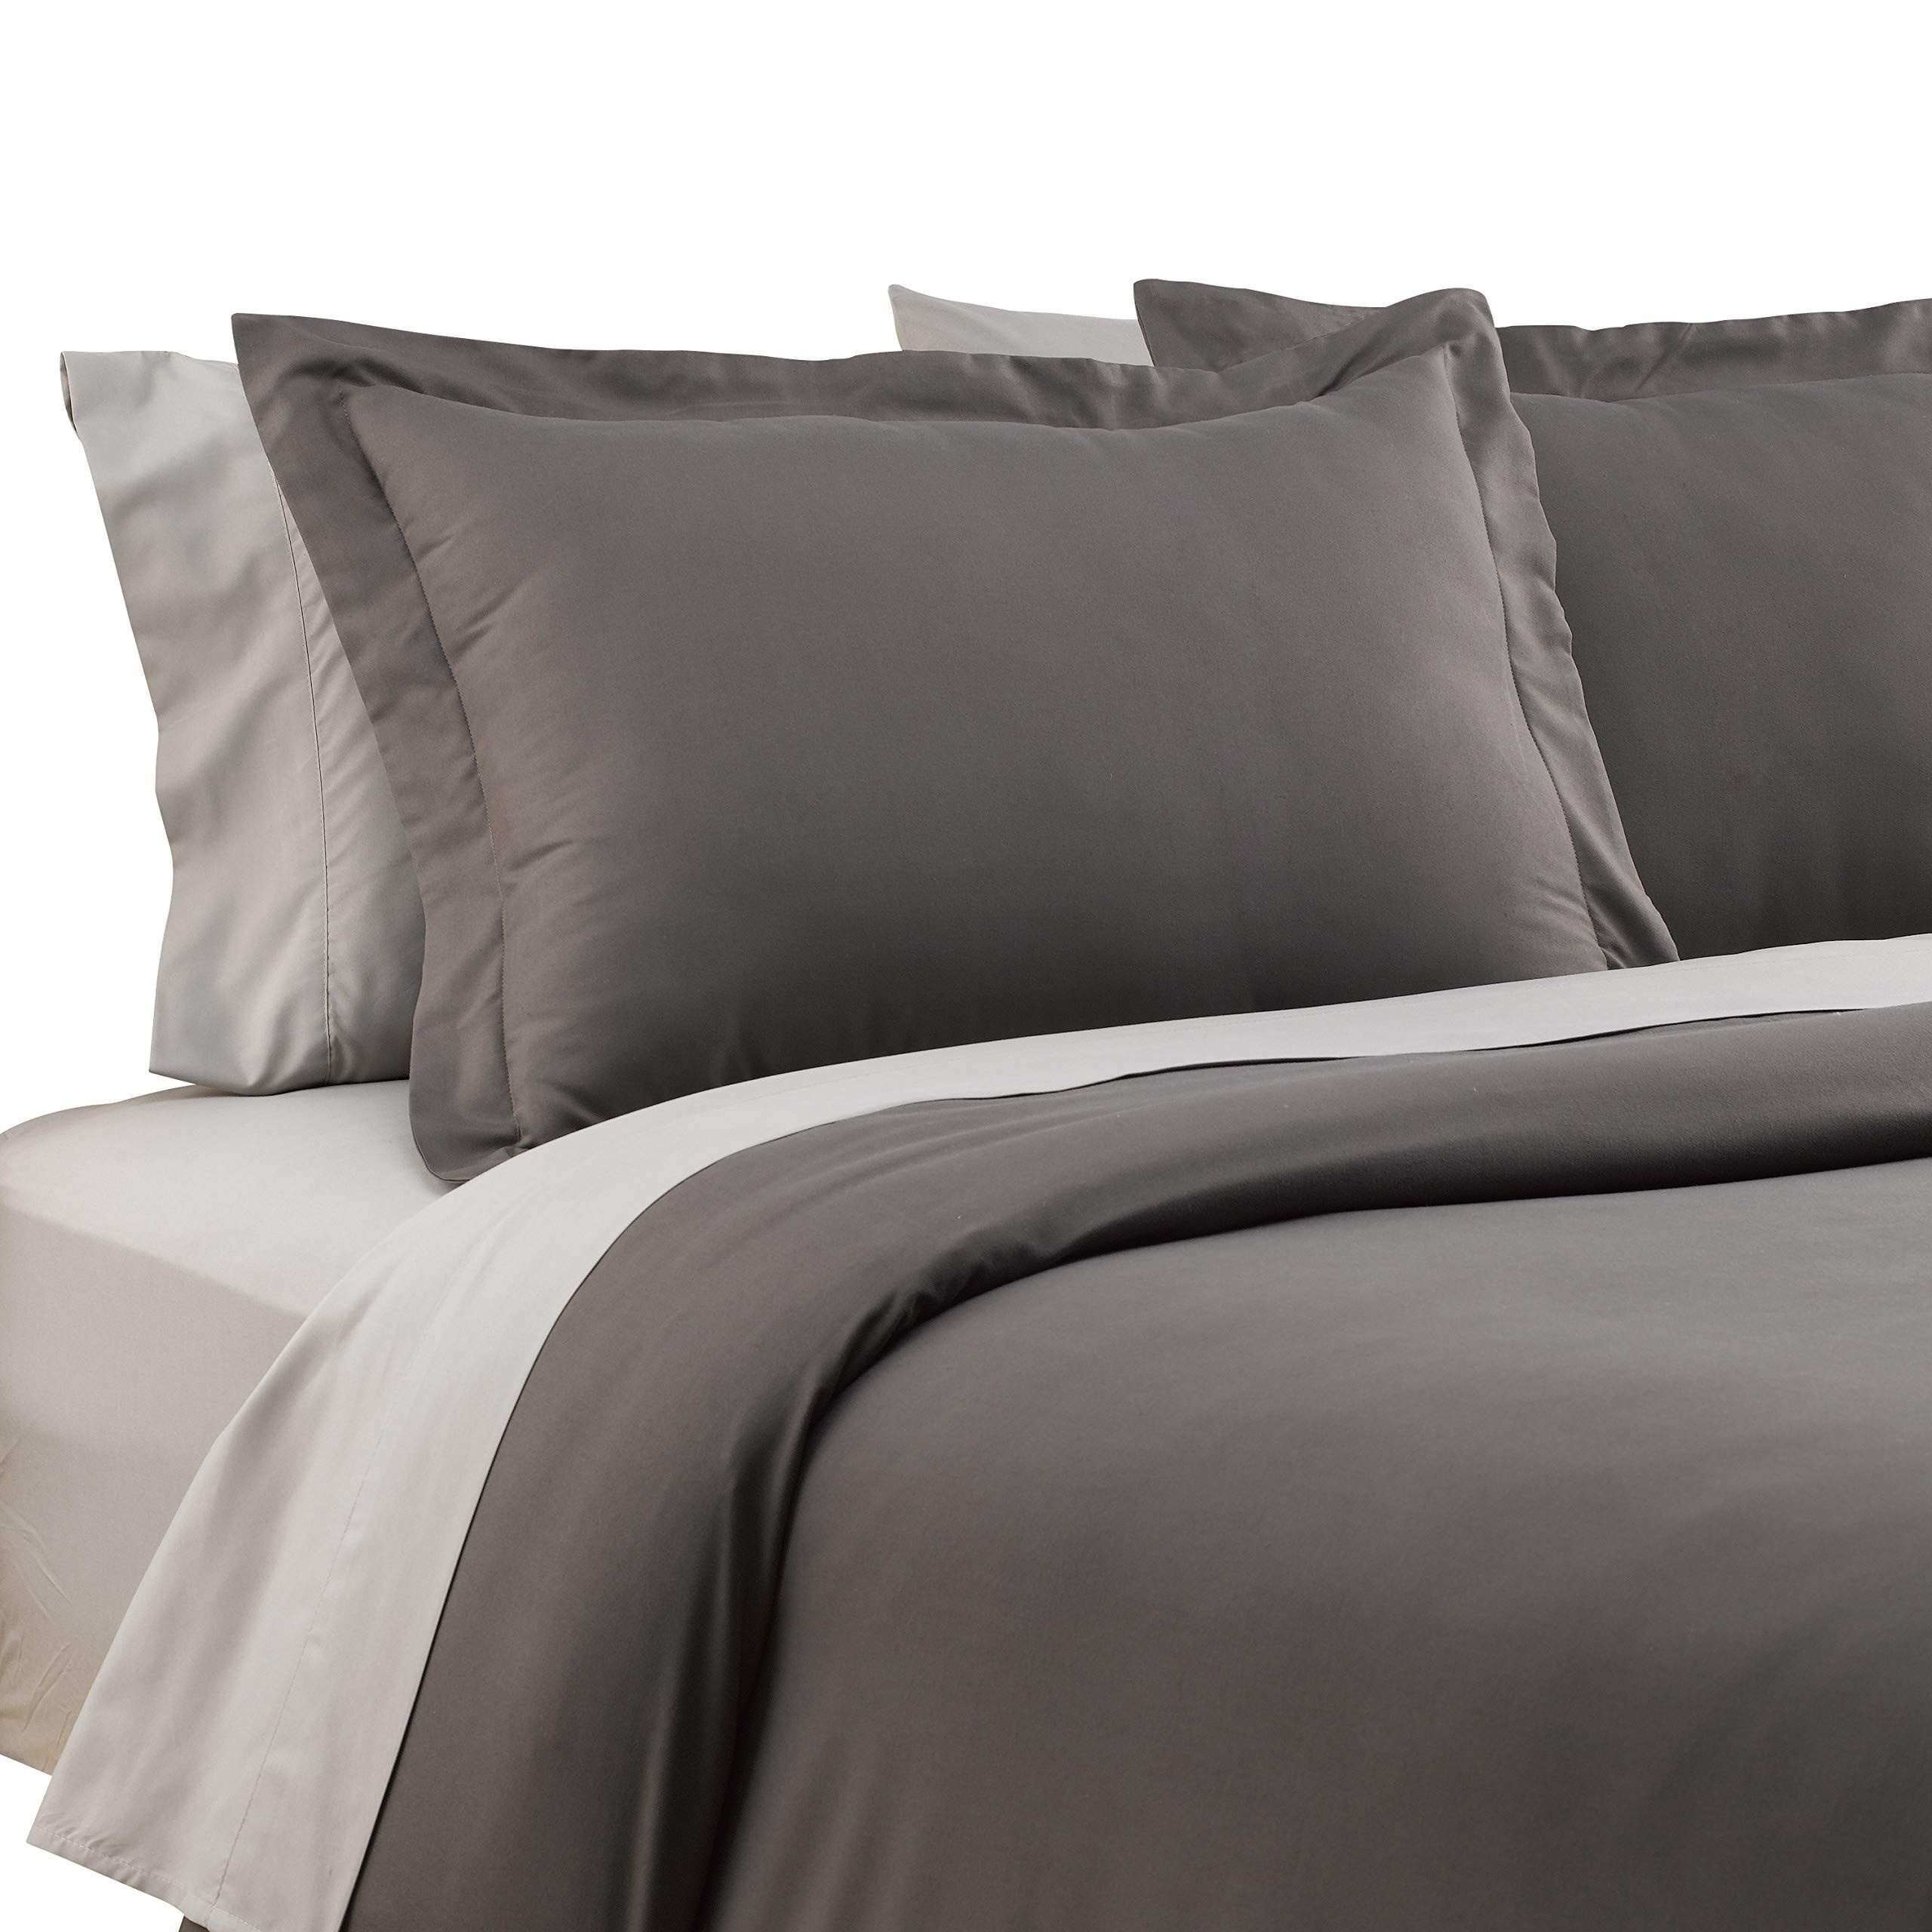 Karalai Grey Duvet Cover Queen Soft Luxurious Hotel Quality Bedding Dark Grey Queen Be Sure To Check Out This Awe Queen Size Bed Sets Queen Bedding Sets Bed